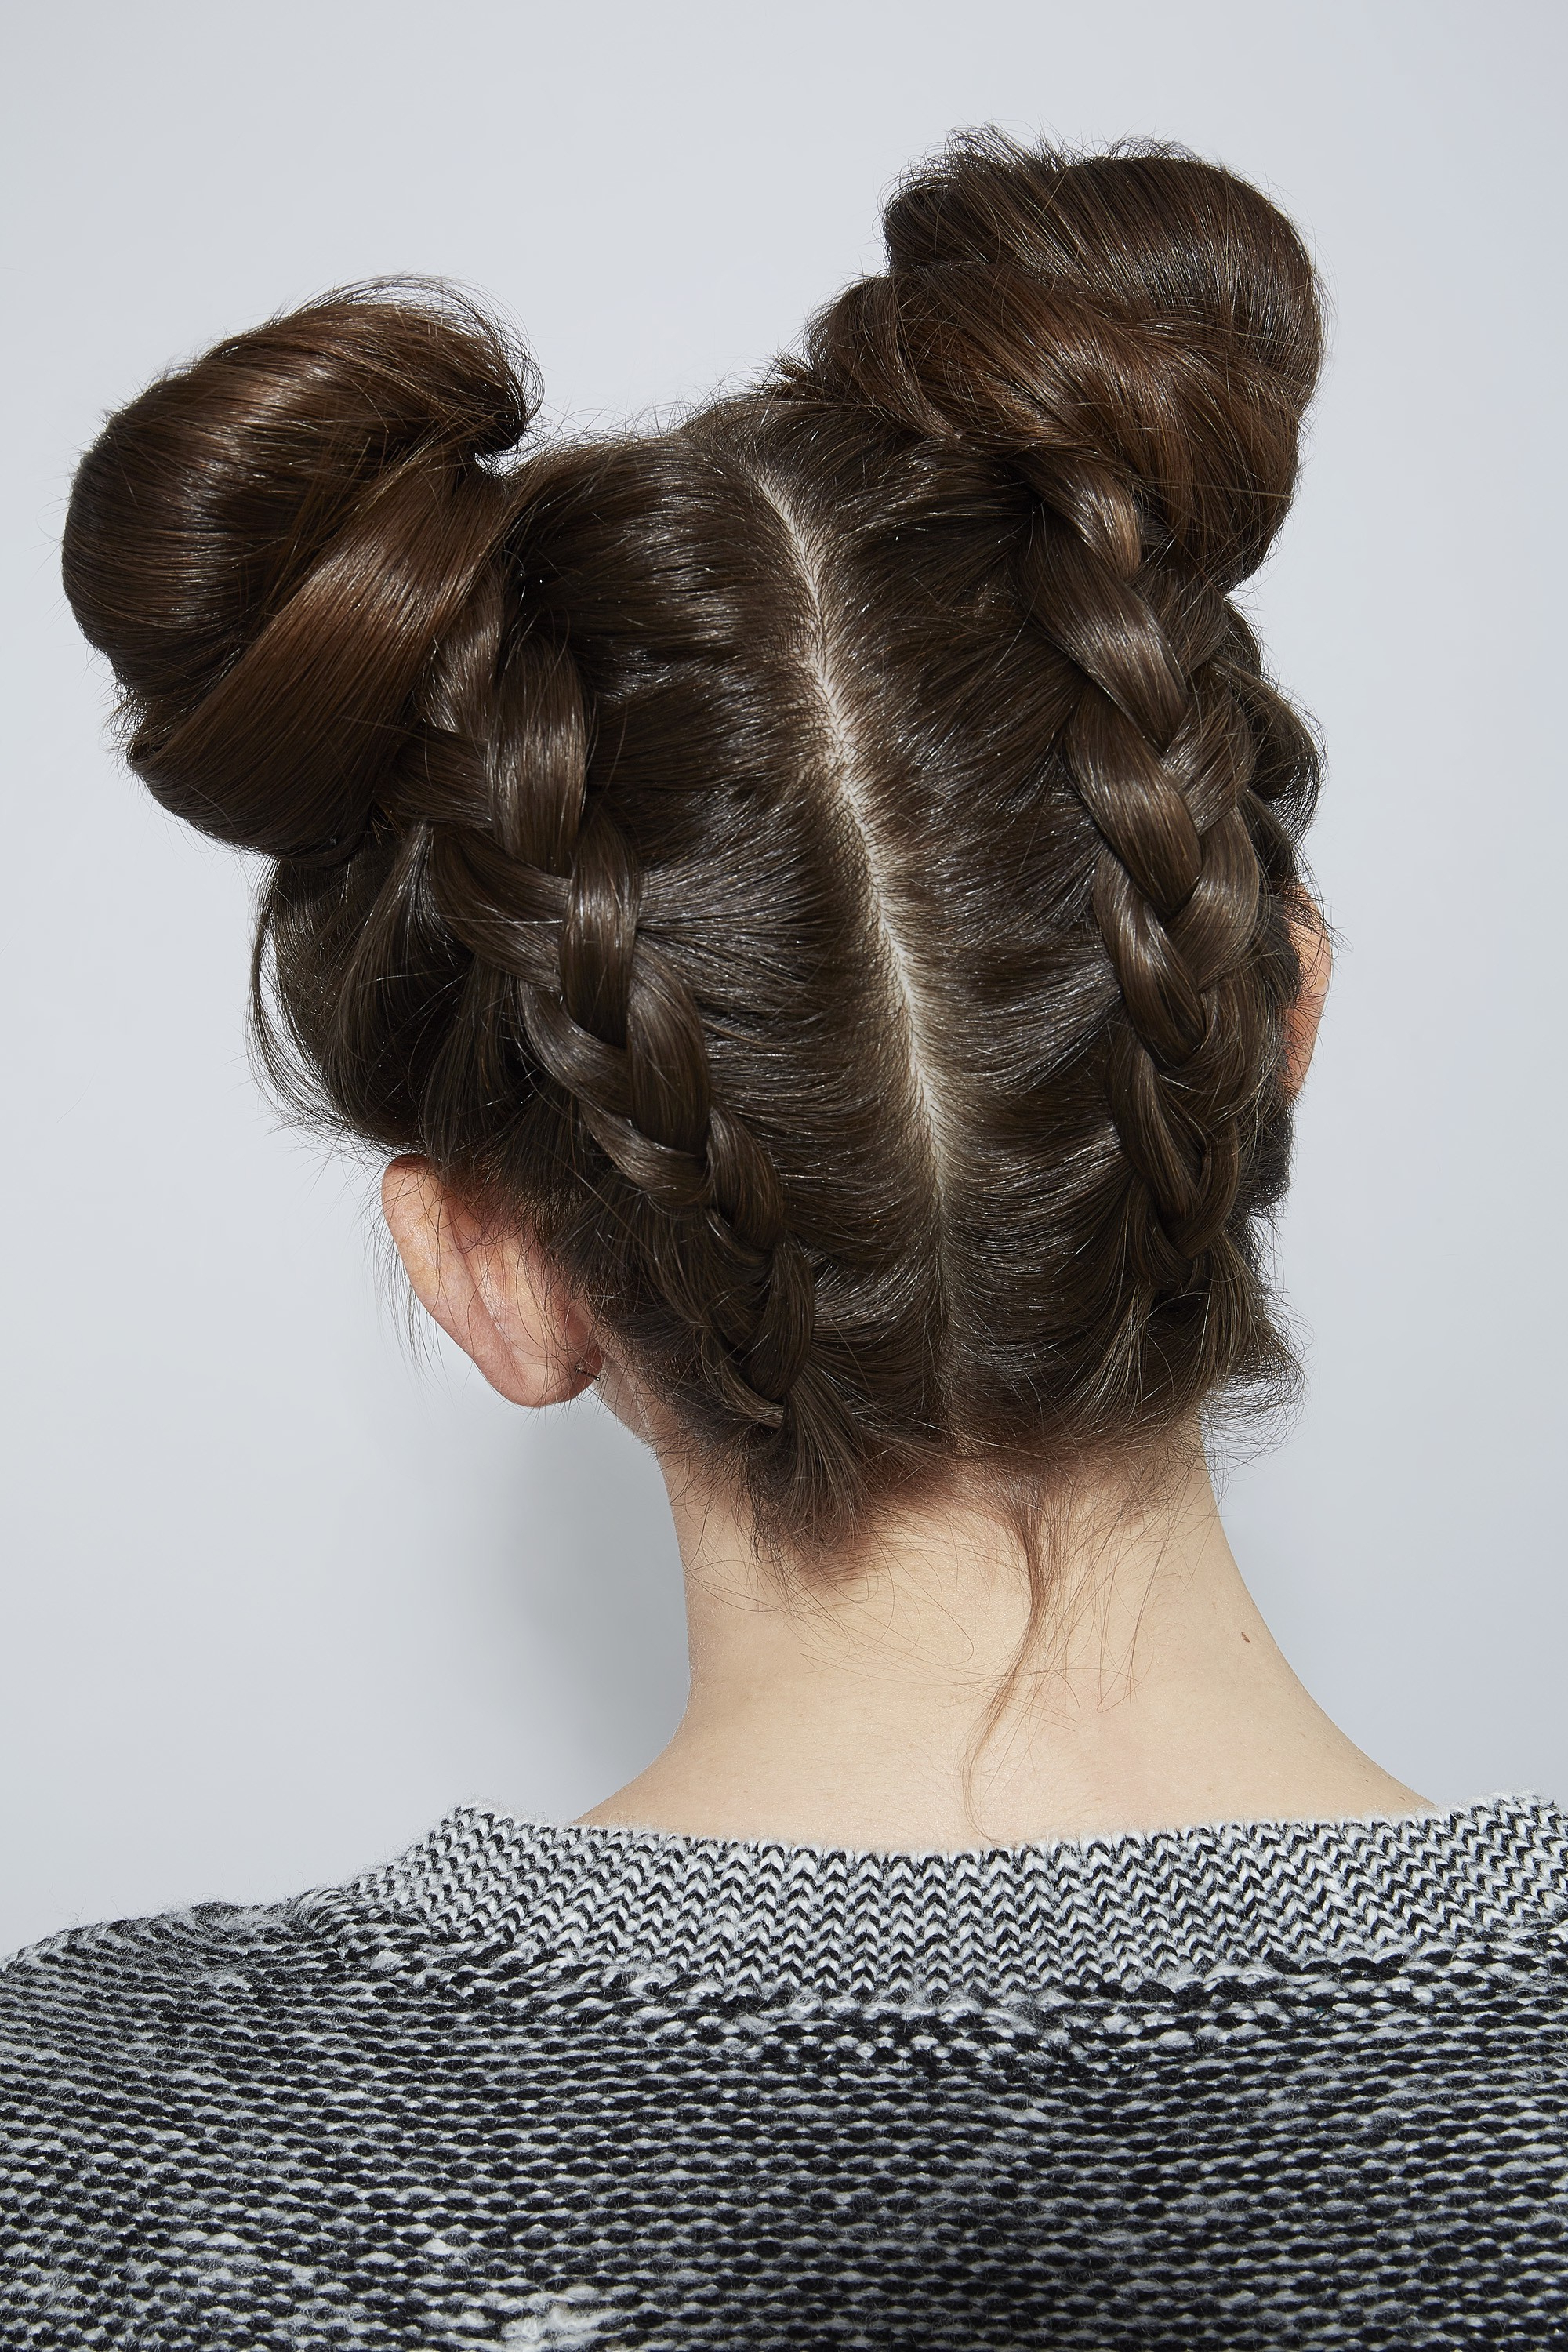 23 Super Easy Braided Updos For Every Occasion (View 1 of 20)